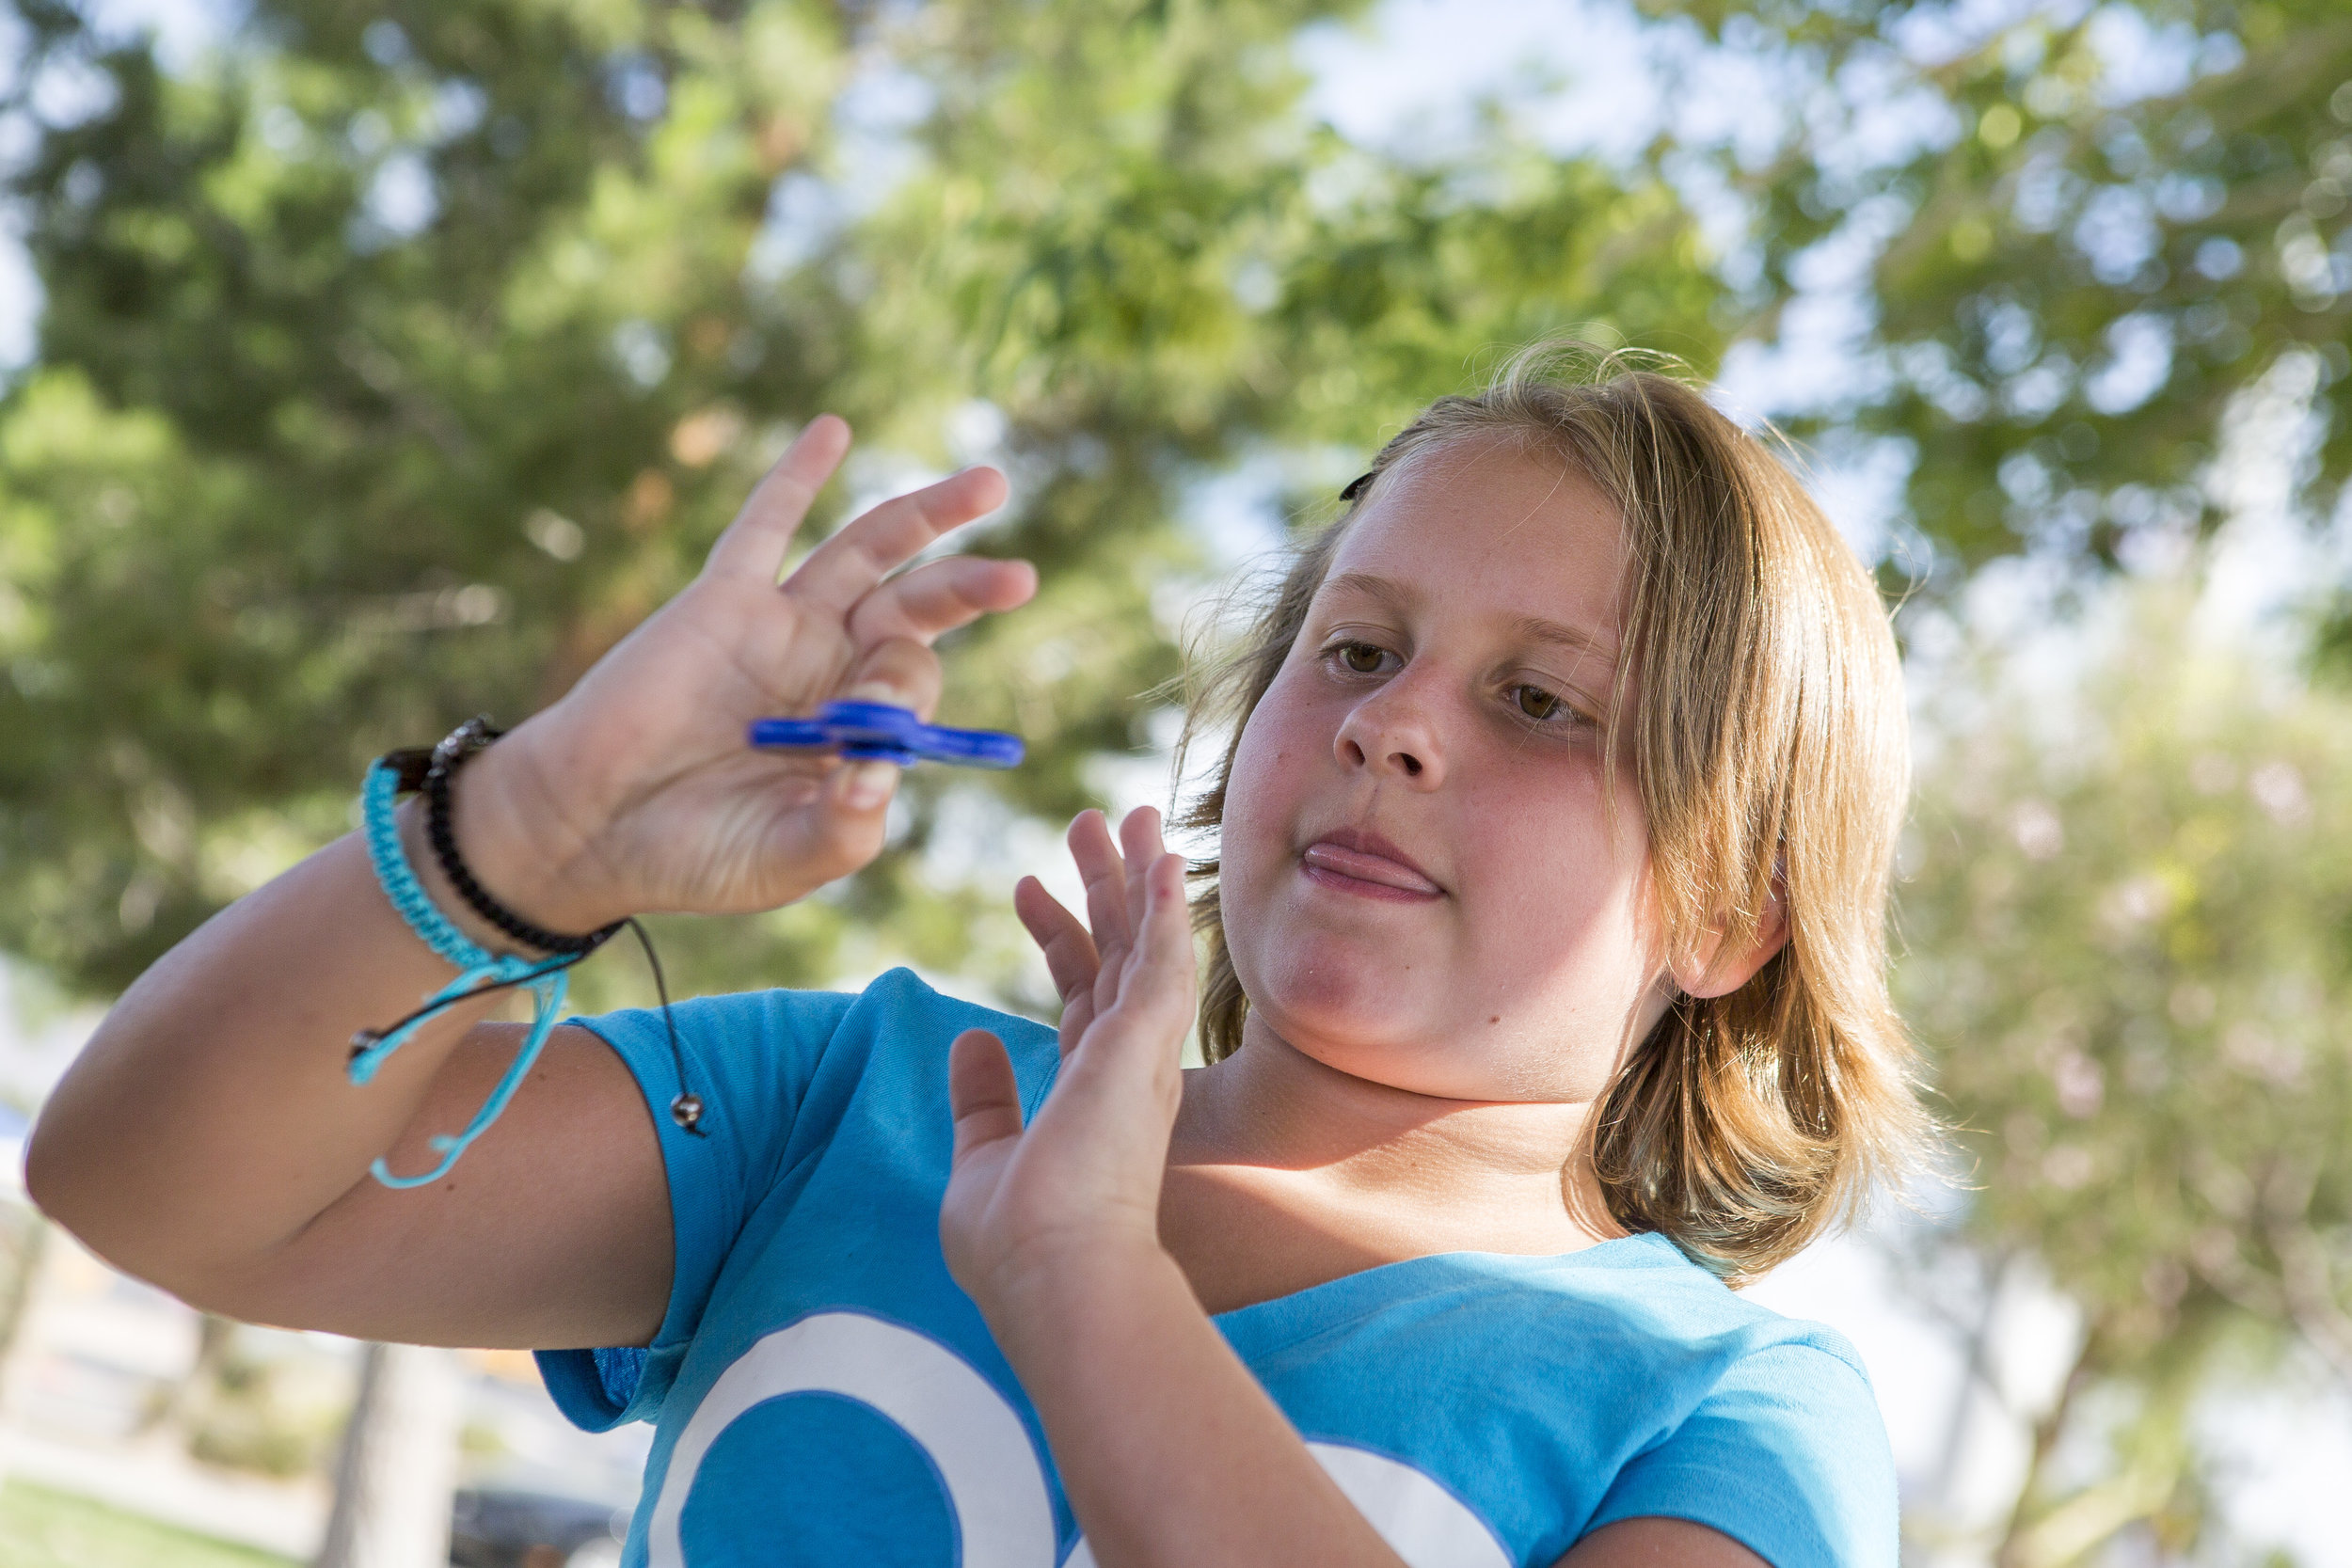 Tayler Rexroad, 8, plays with her fidget spinner at Stephanie Lynn Craig Park in Henderson on Monday, May 22, 2017. Fidget spinners have been the source of scrutiny by some school teachers and officials, some of whom have banned the toys. Patrick Connolly Las Vegas Review-Journal @PConnPie